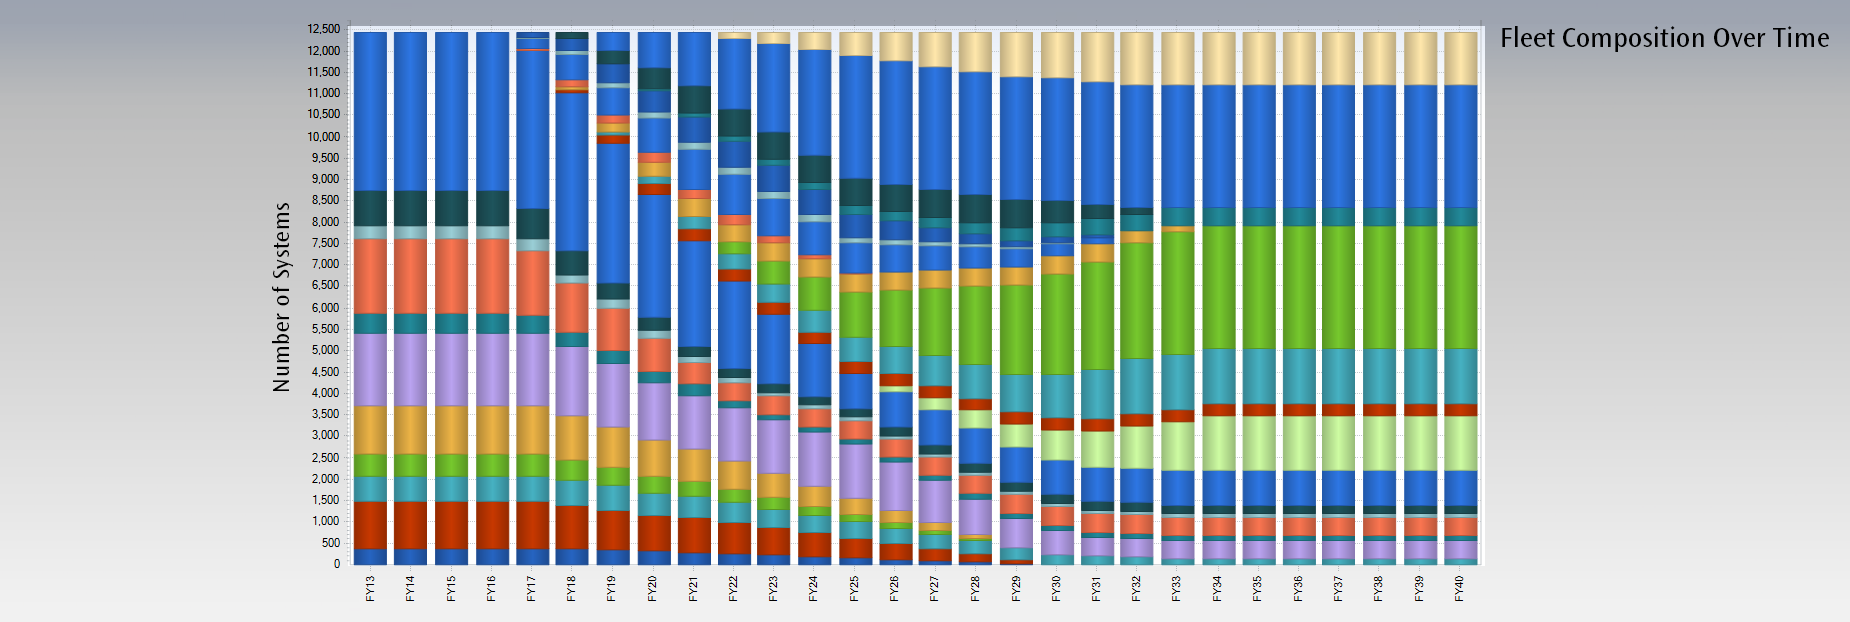 Graph showing the Fleet Composition over time.